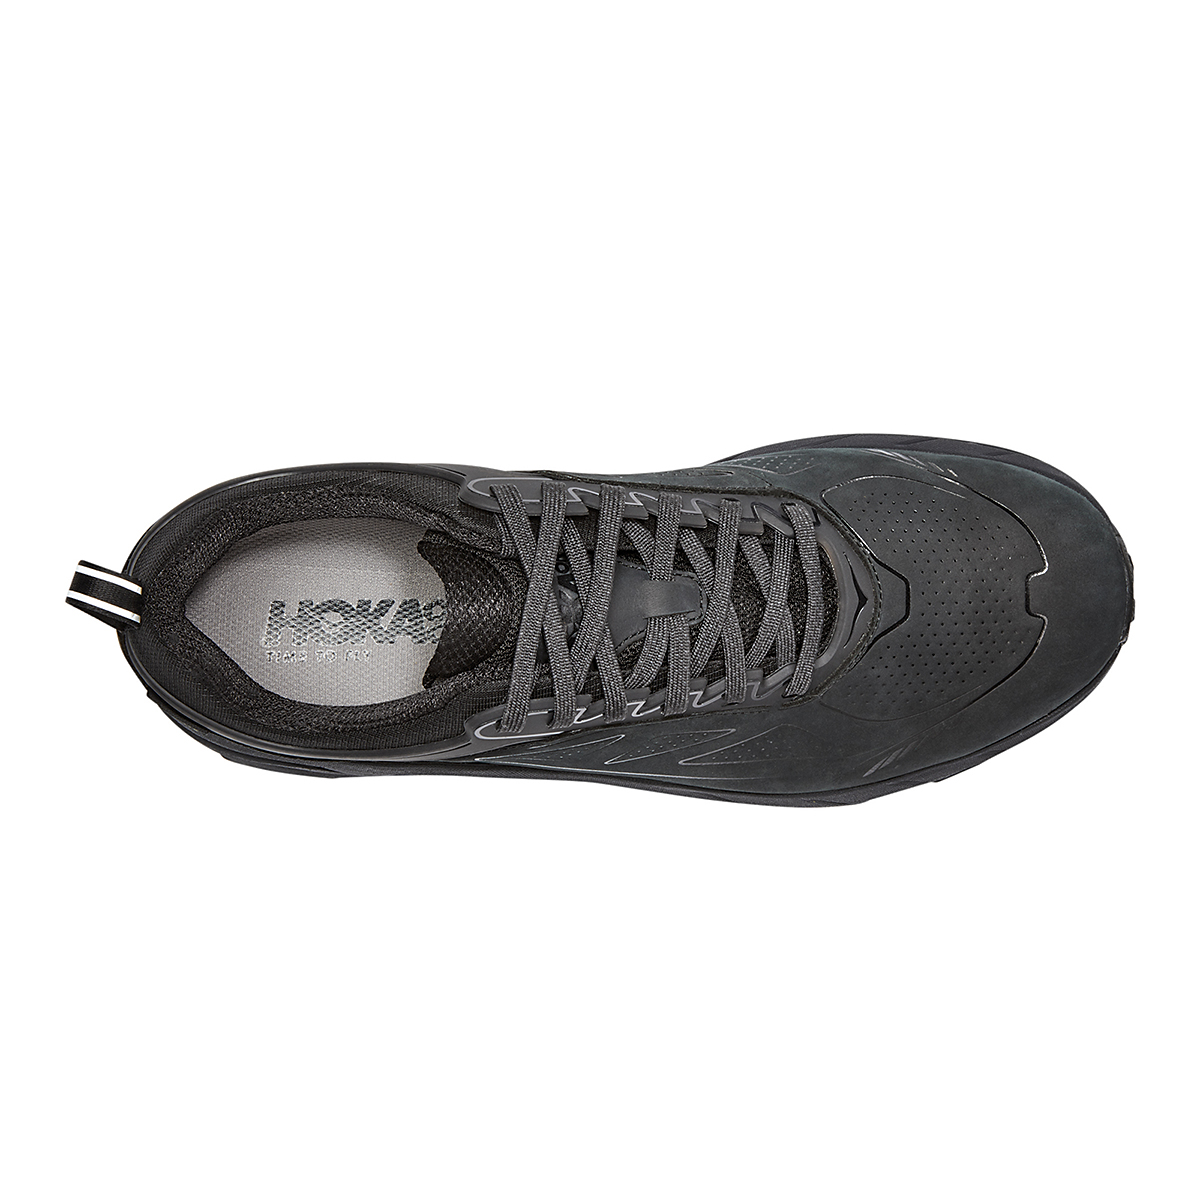 Men's Hoka One One Challenger Low Gore-Tex Trail Running Shoe, , large, image 4